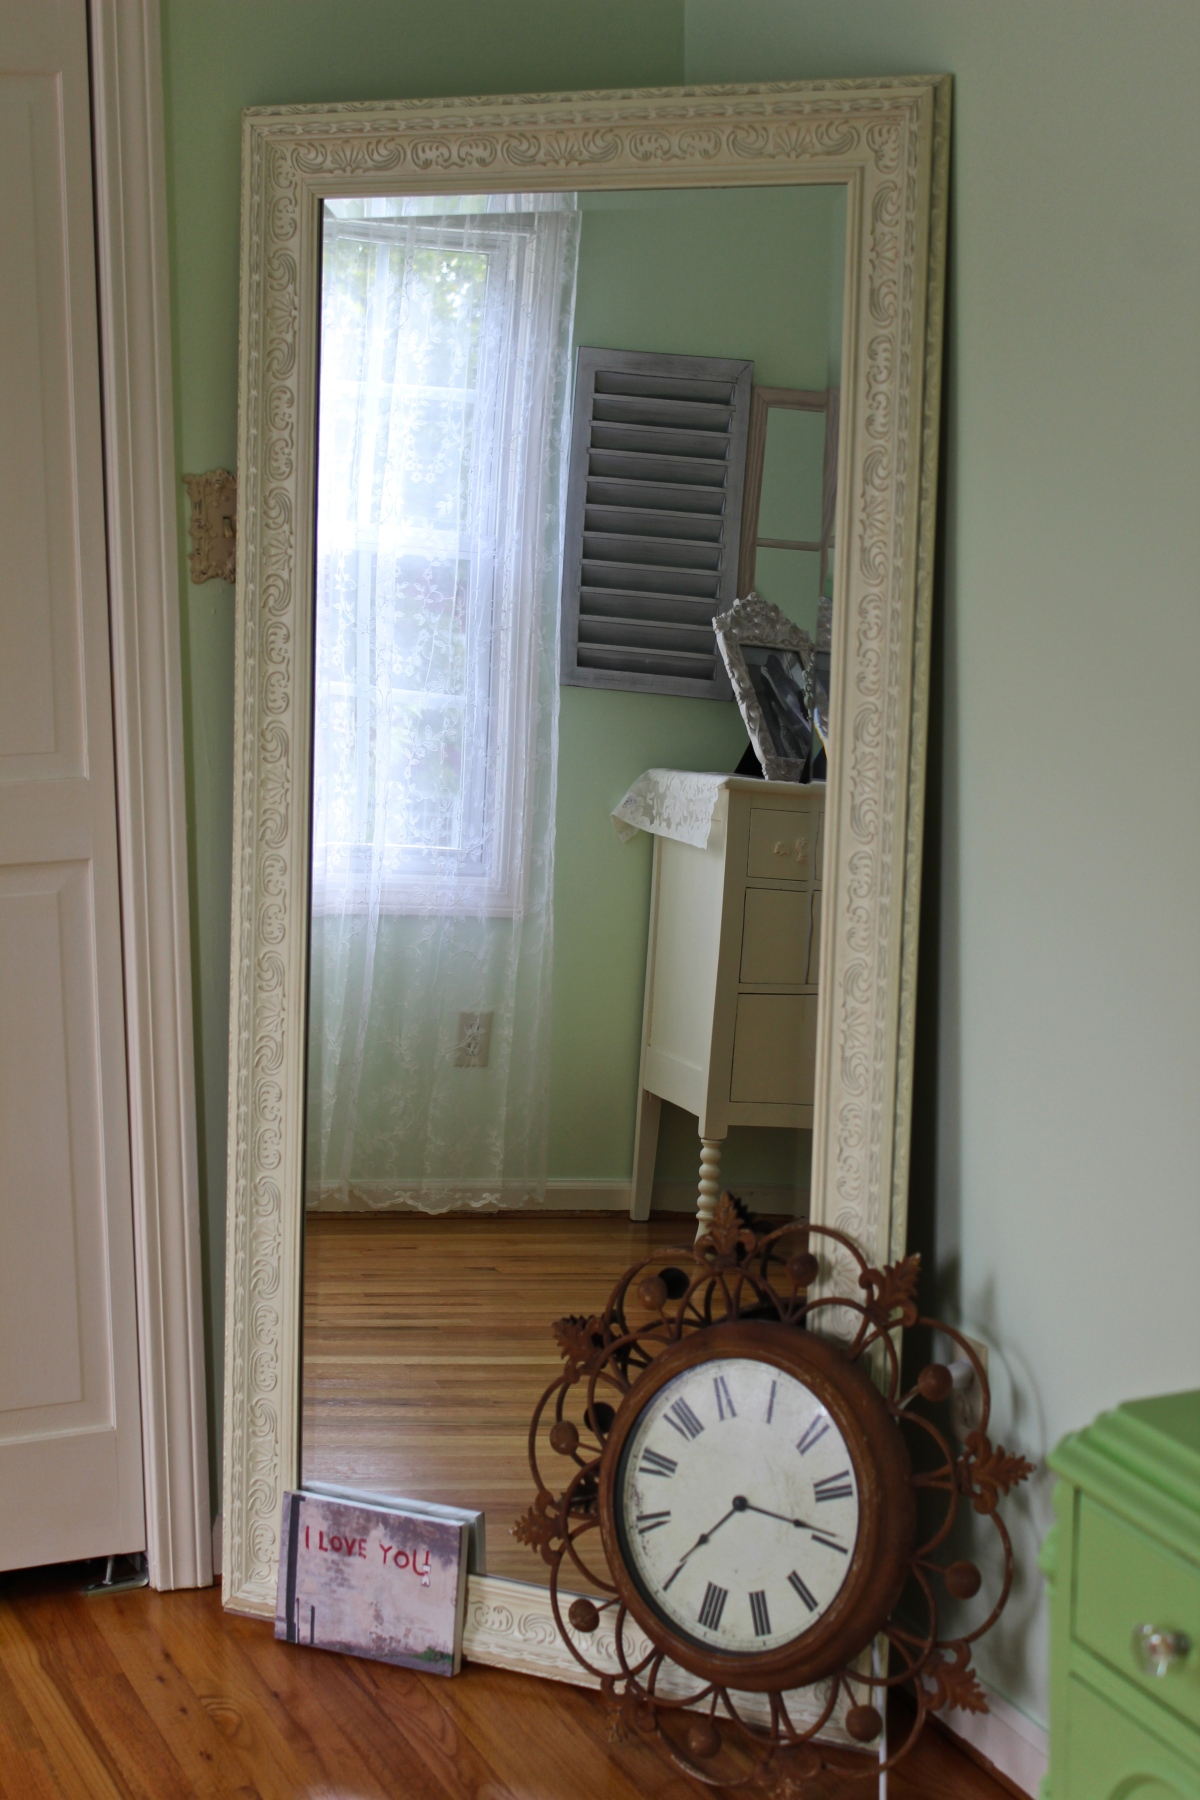 A leaning mirror is perfect for my look, and a full-length mirror is a must in any bedroom. Photo by Alexa